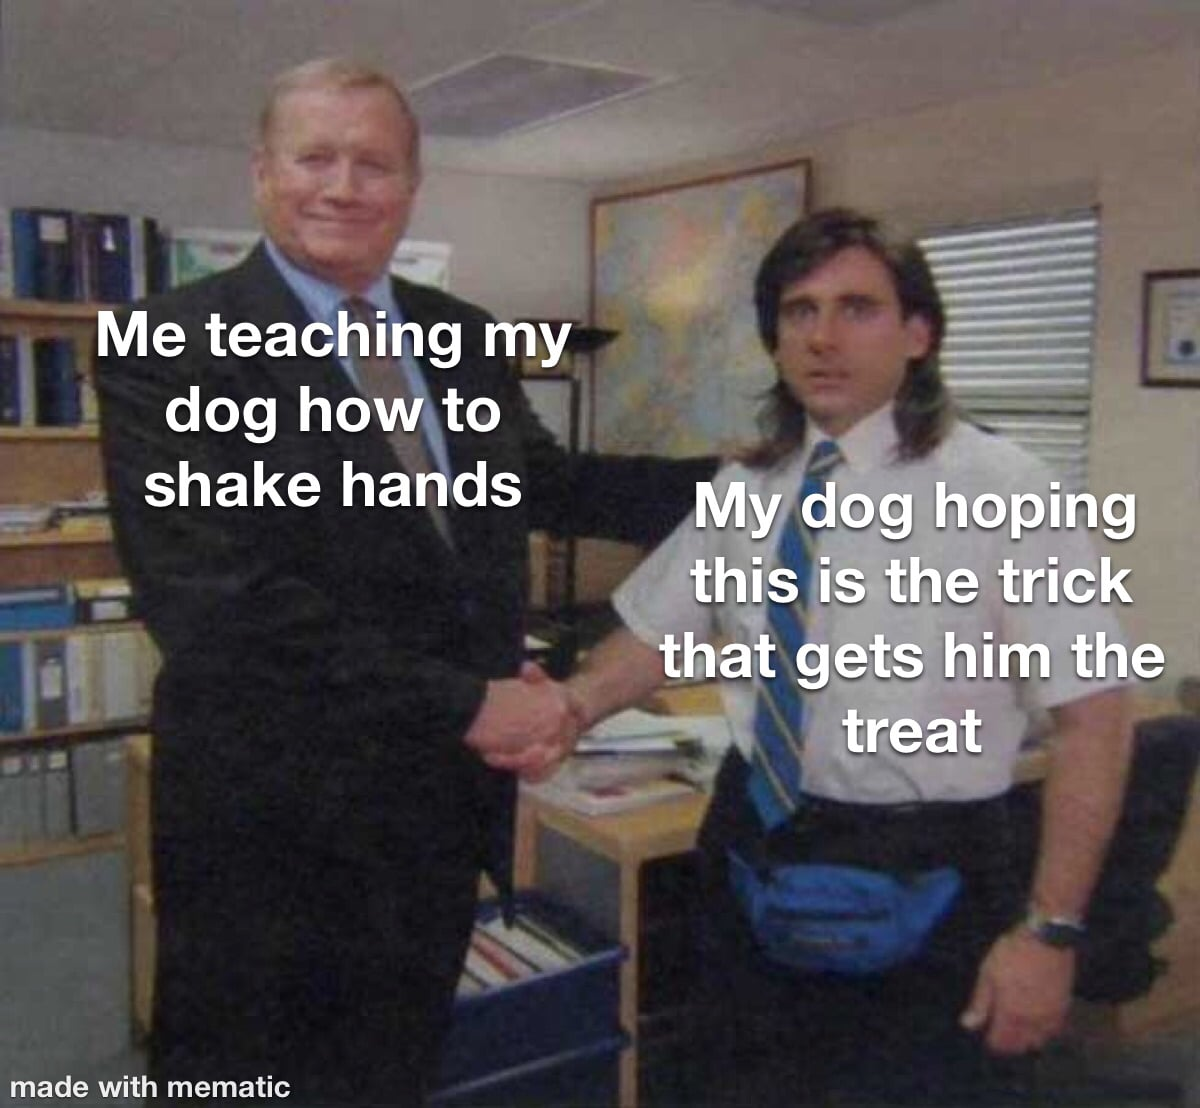 cute wholesome-memes cute text: Me teaching my dog hoqto shake hands My dog hoping this IS the trick that gets him the treat nade with mematic